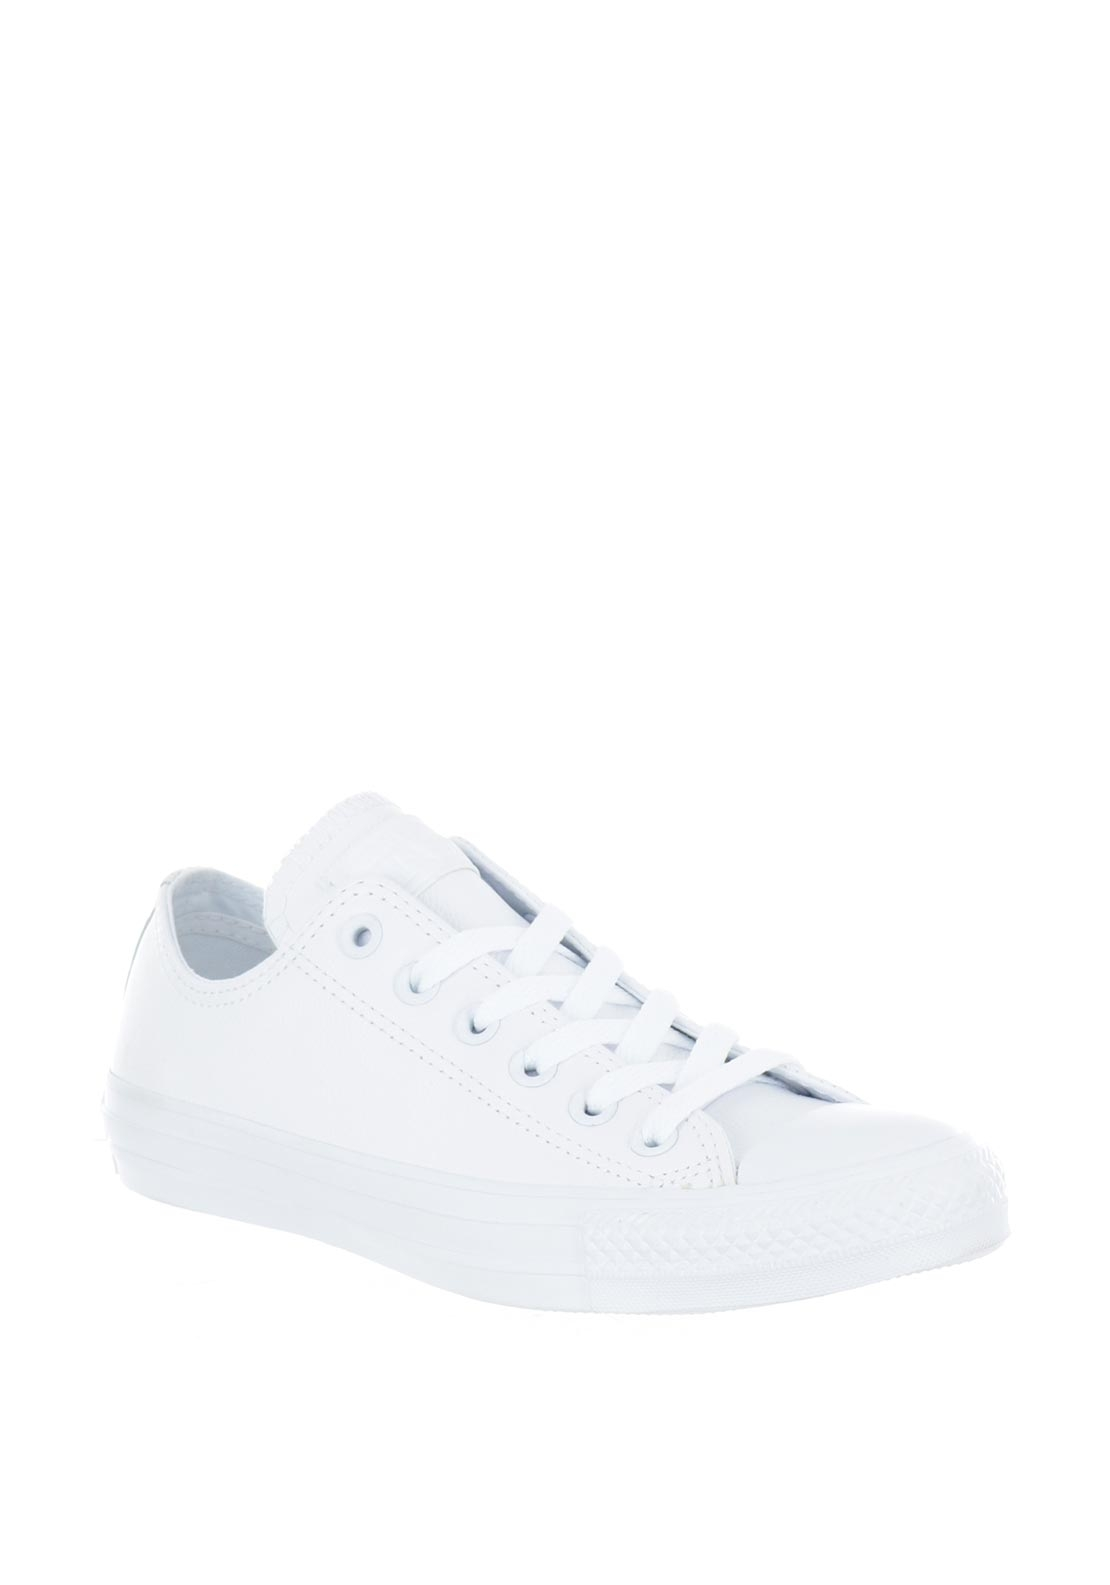 Converse Unisex All Star Leather Trainers, White